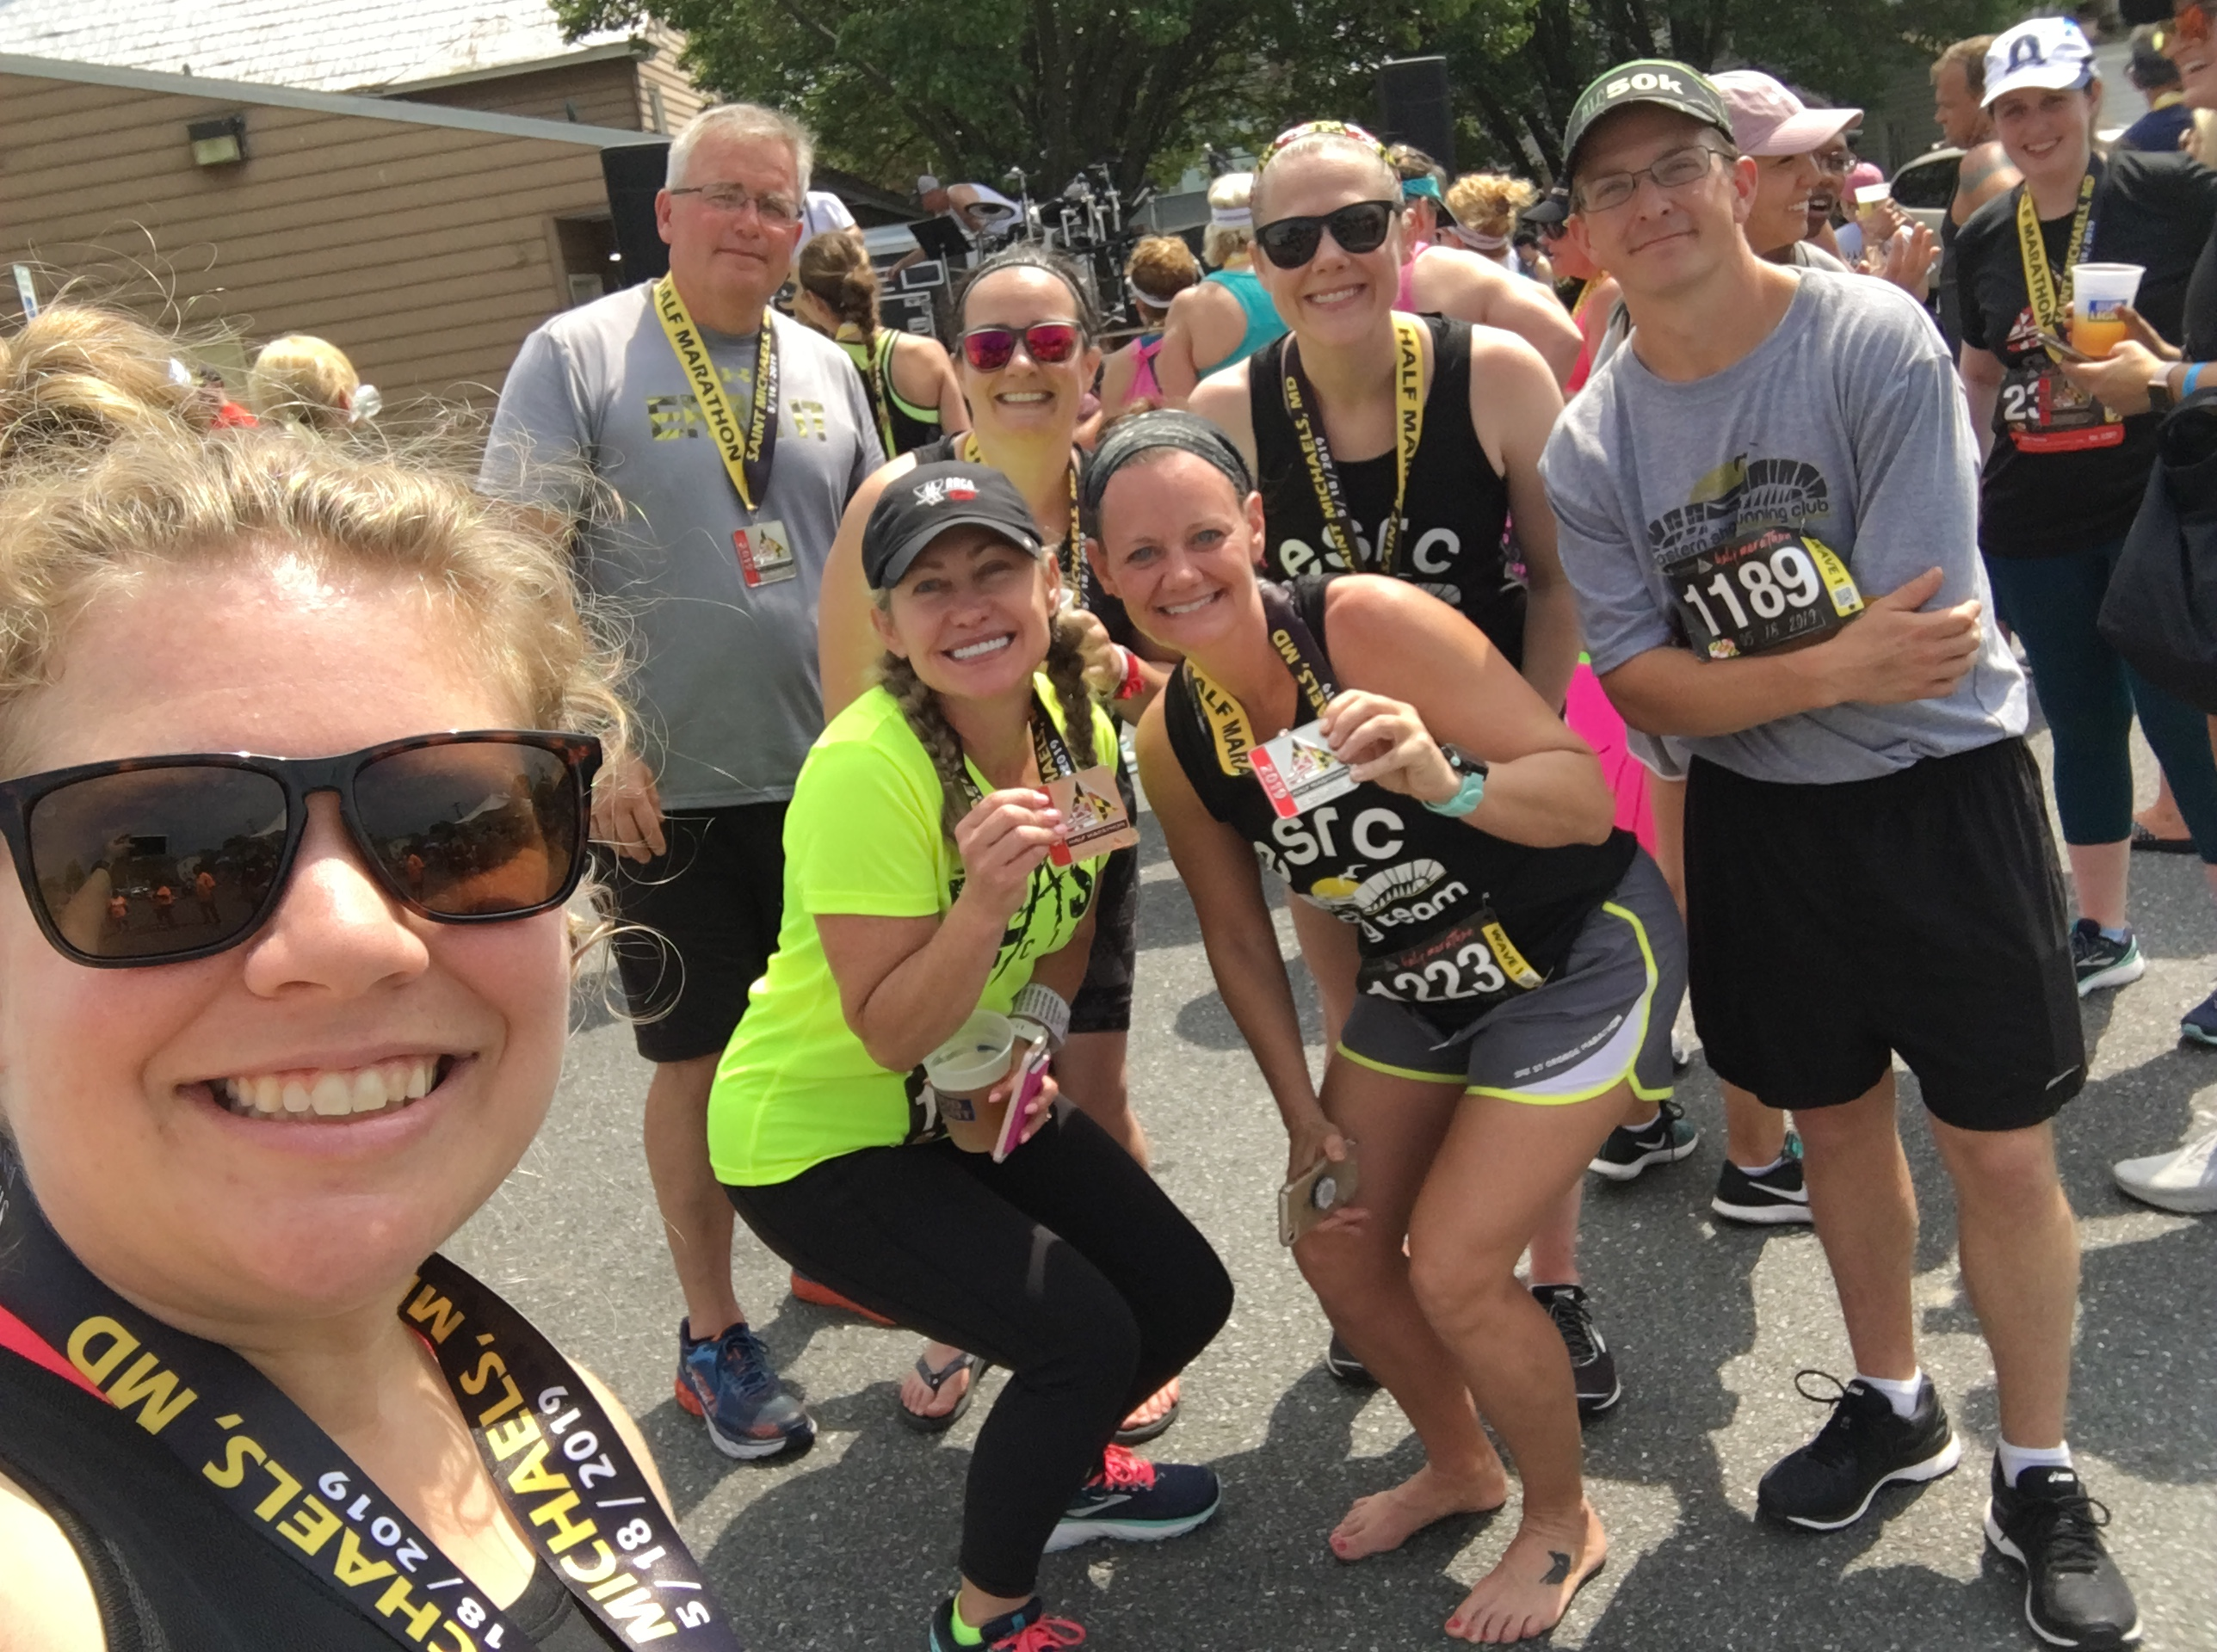 Eastern Shore Running Club members in a selfie taken by Vanessa Junkin. People are holding finisher medals.